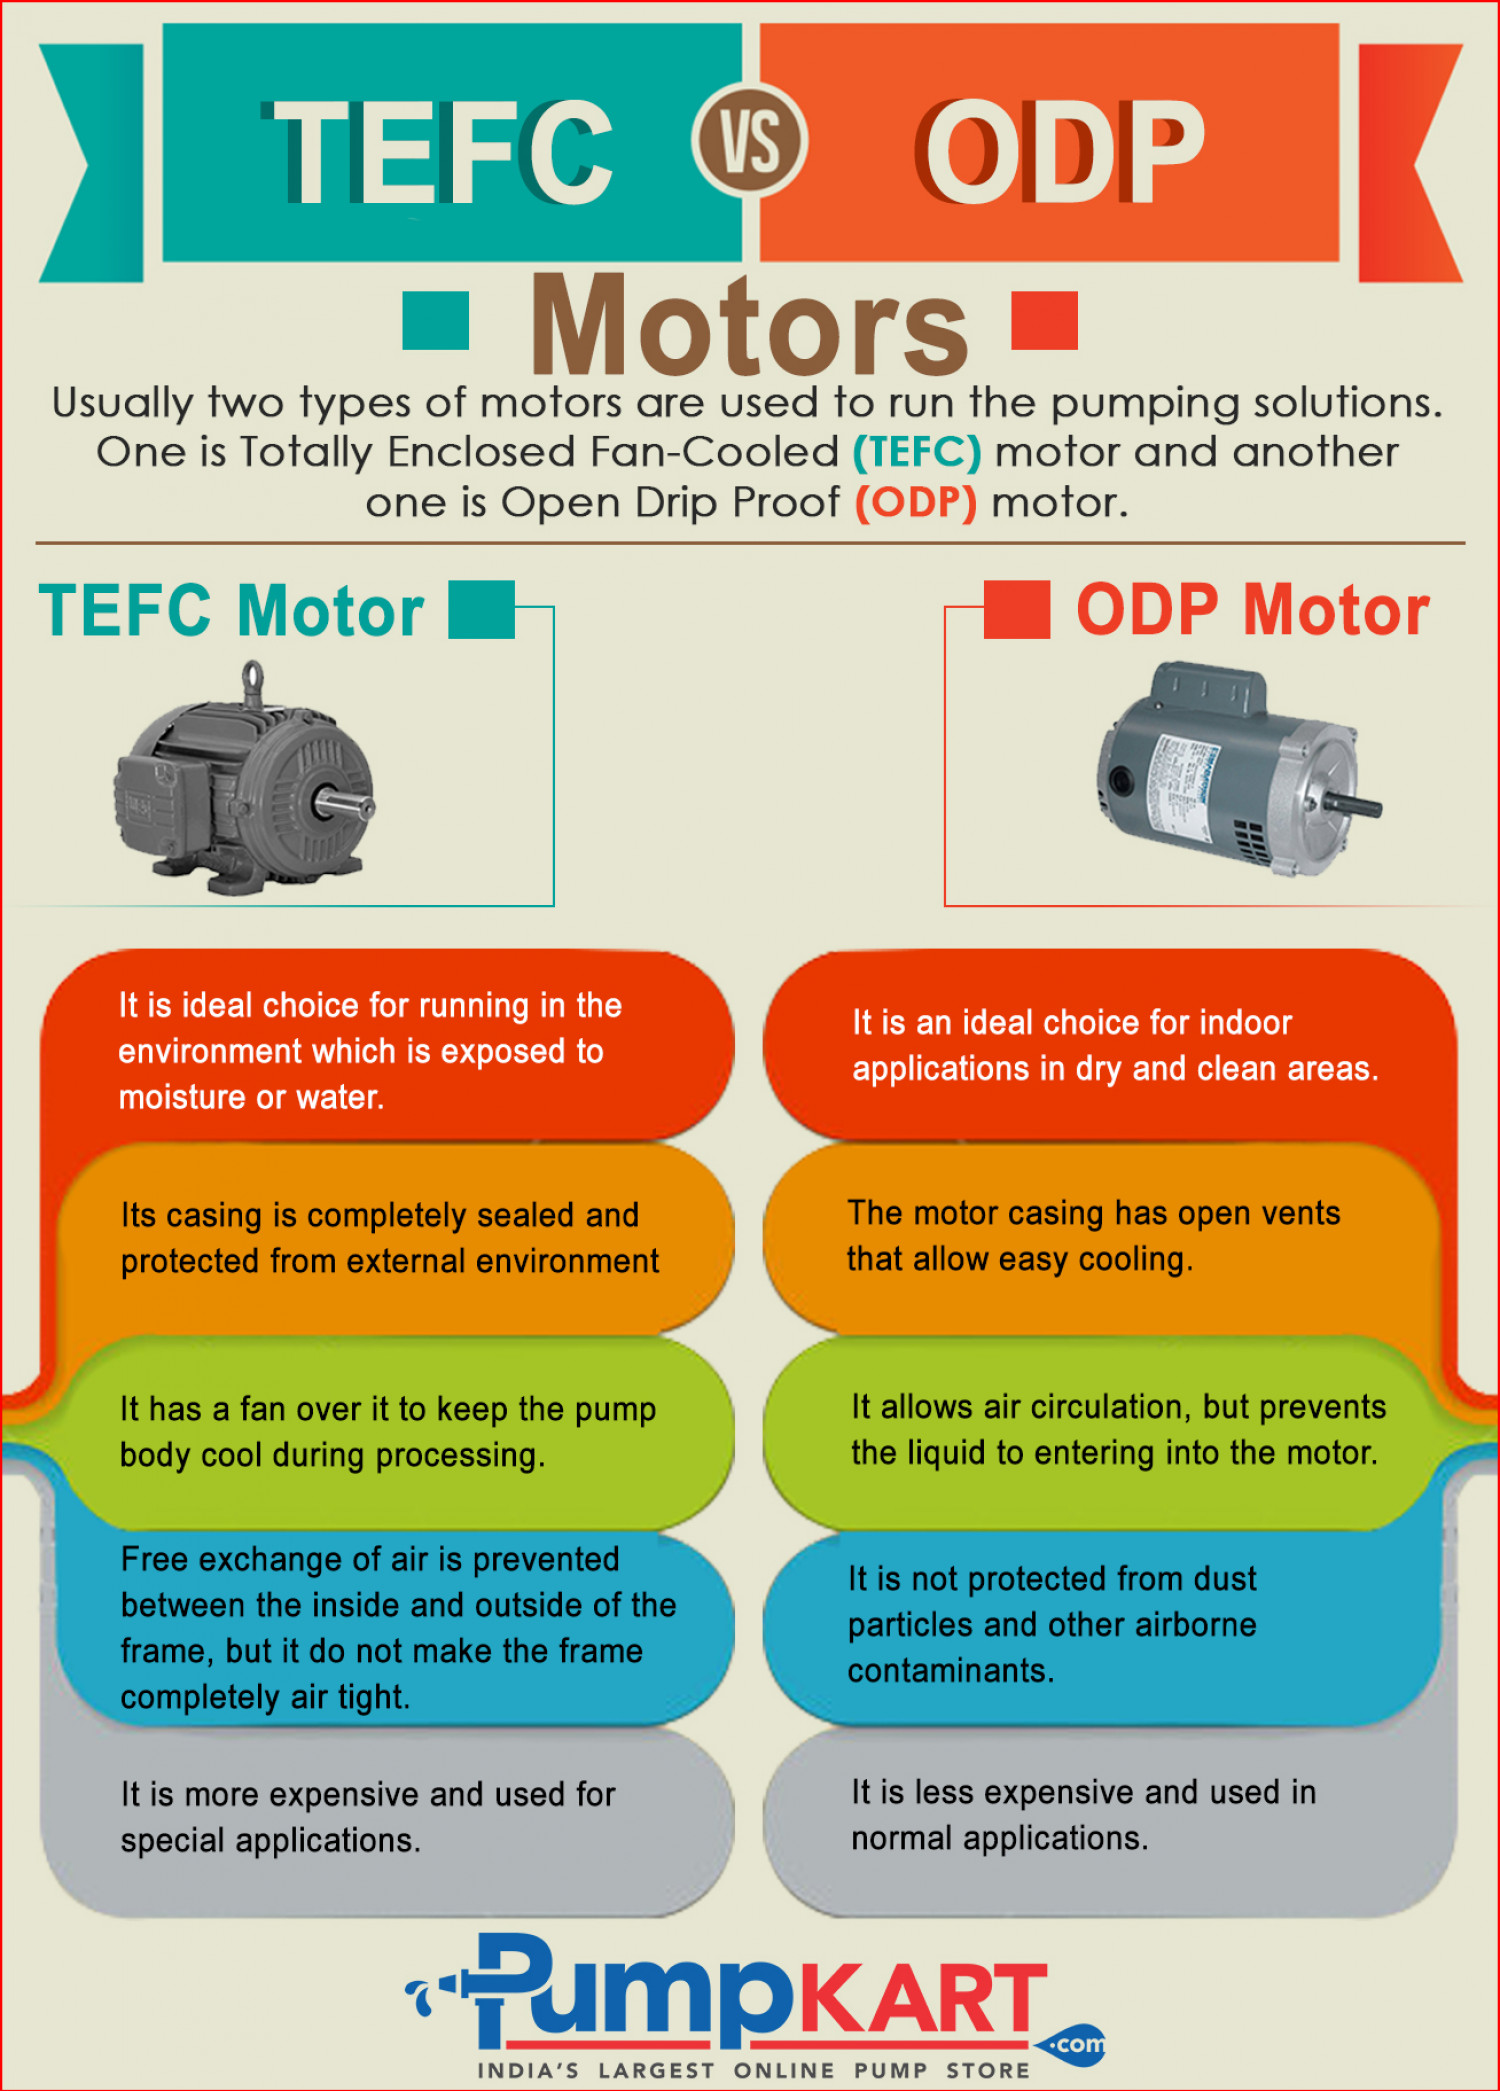 Vehicle Tracking System >> TEFC Vs ODP Motors | Visual.ly